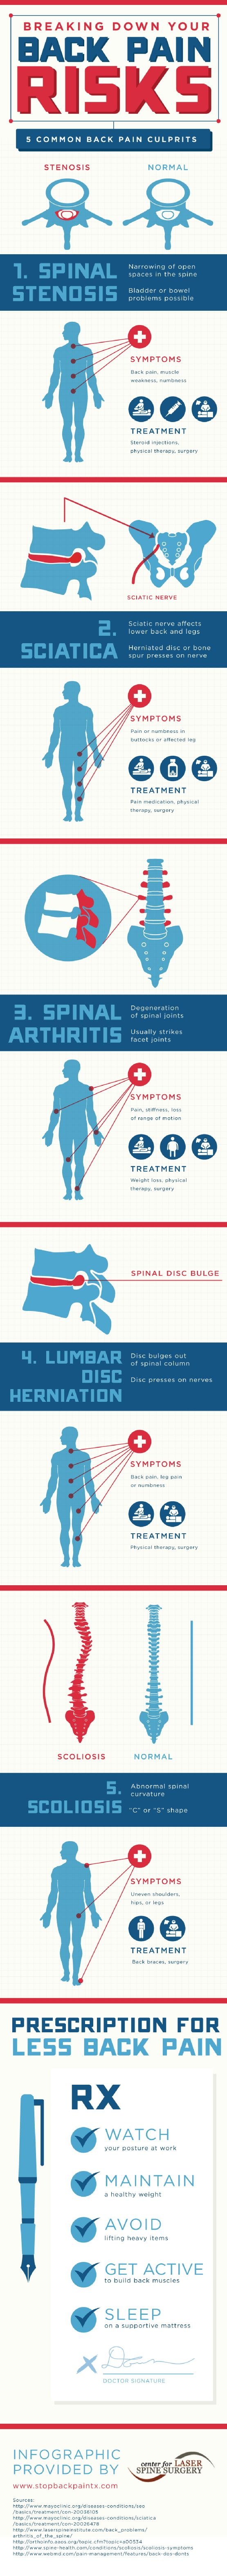 The sciatic nerve reaches all the way from the lower back to the bottom of the legs. If a herniated disc or bone spur presses on this nerve, it can cause sciatica. This infographic from Center for Laser Spine Surgery has more information.